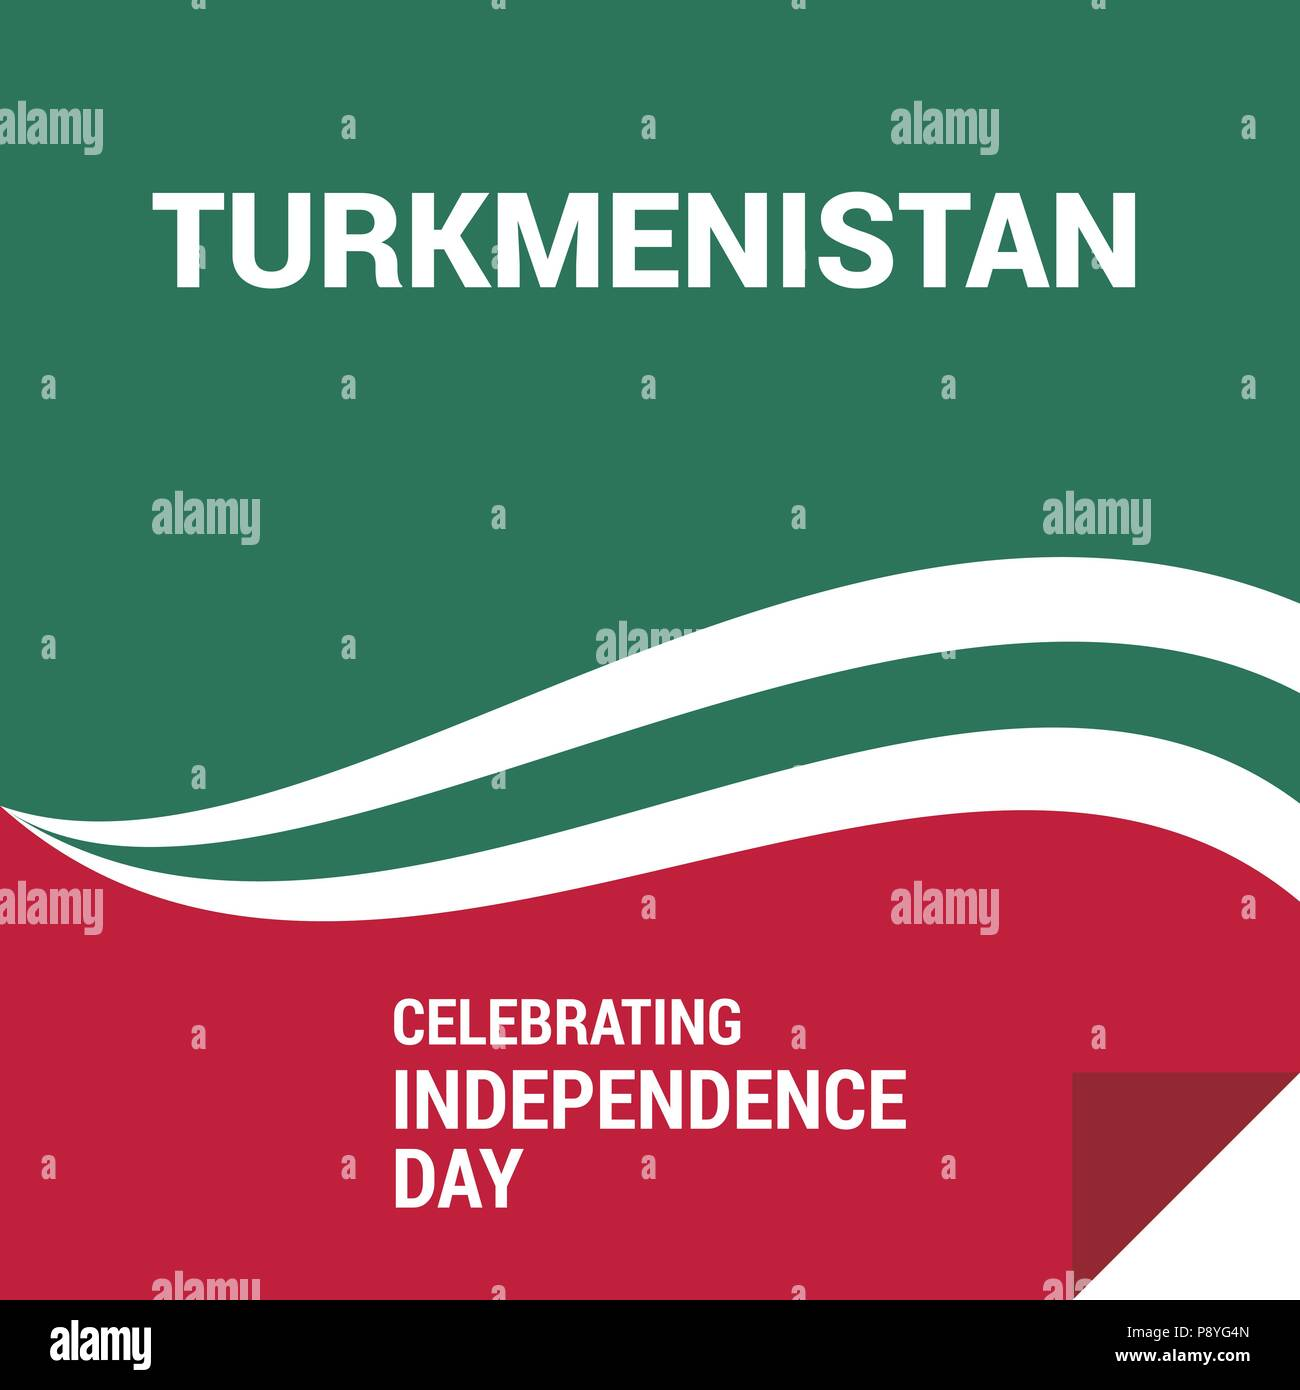 waving flag of Turkmenistan. Template for independence day. vector illustration. For web design and application interface, also useful for infographic Stock Vector